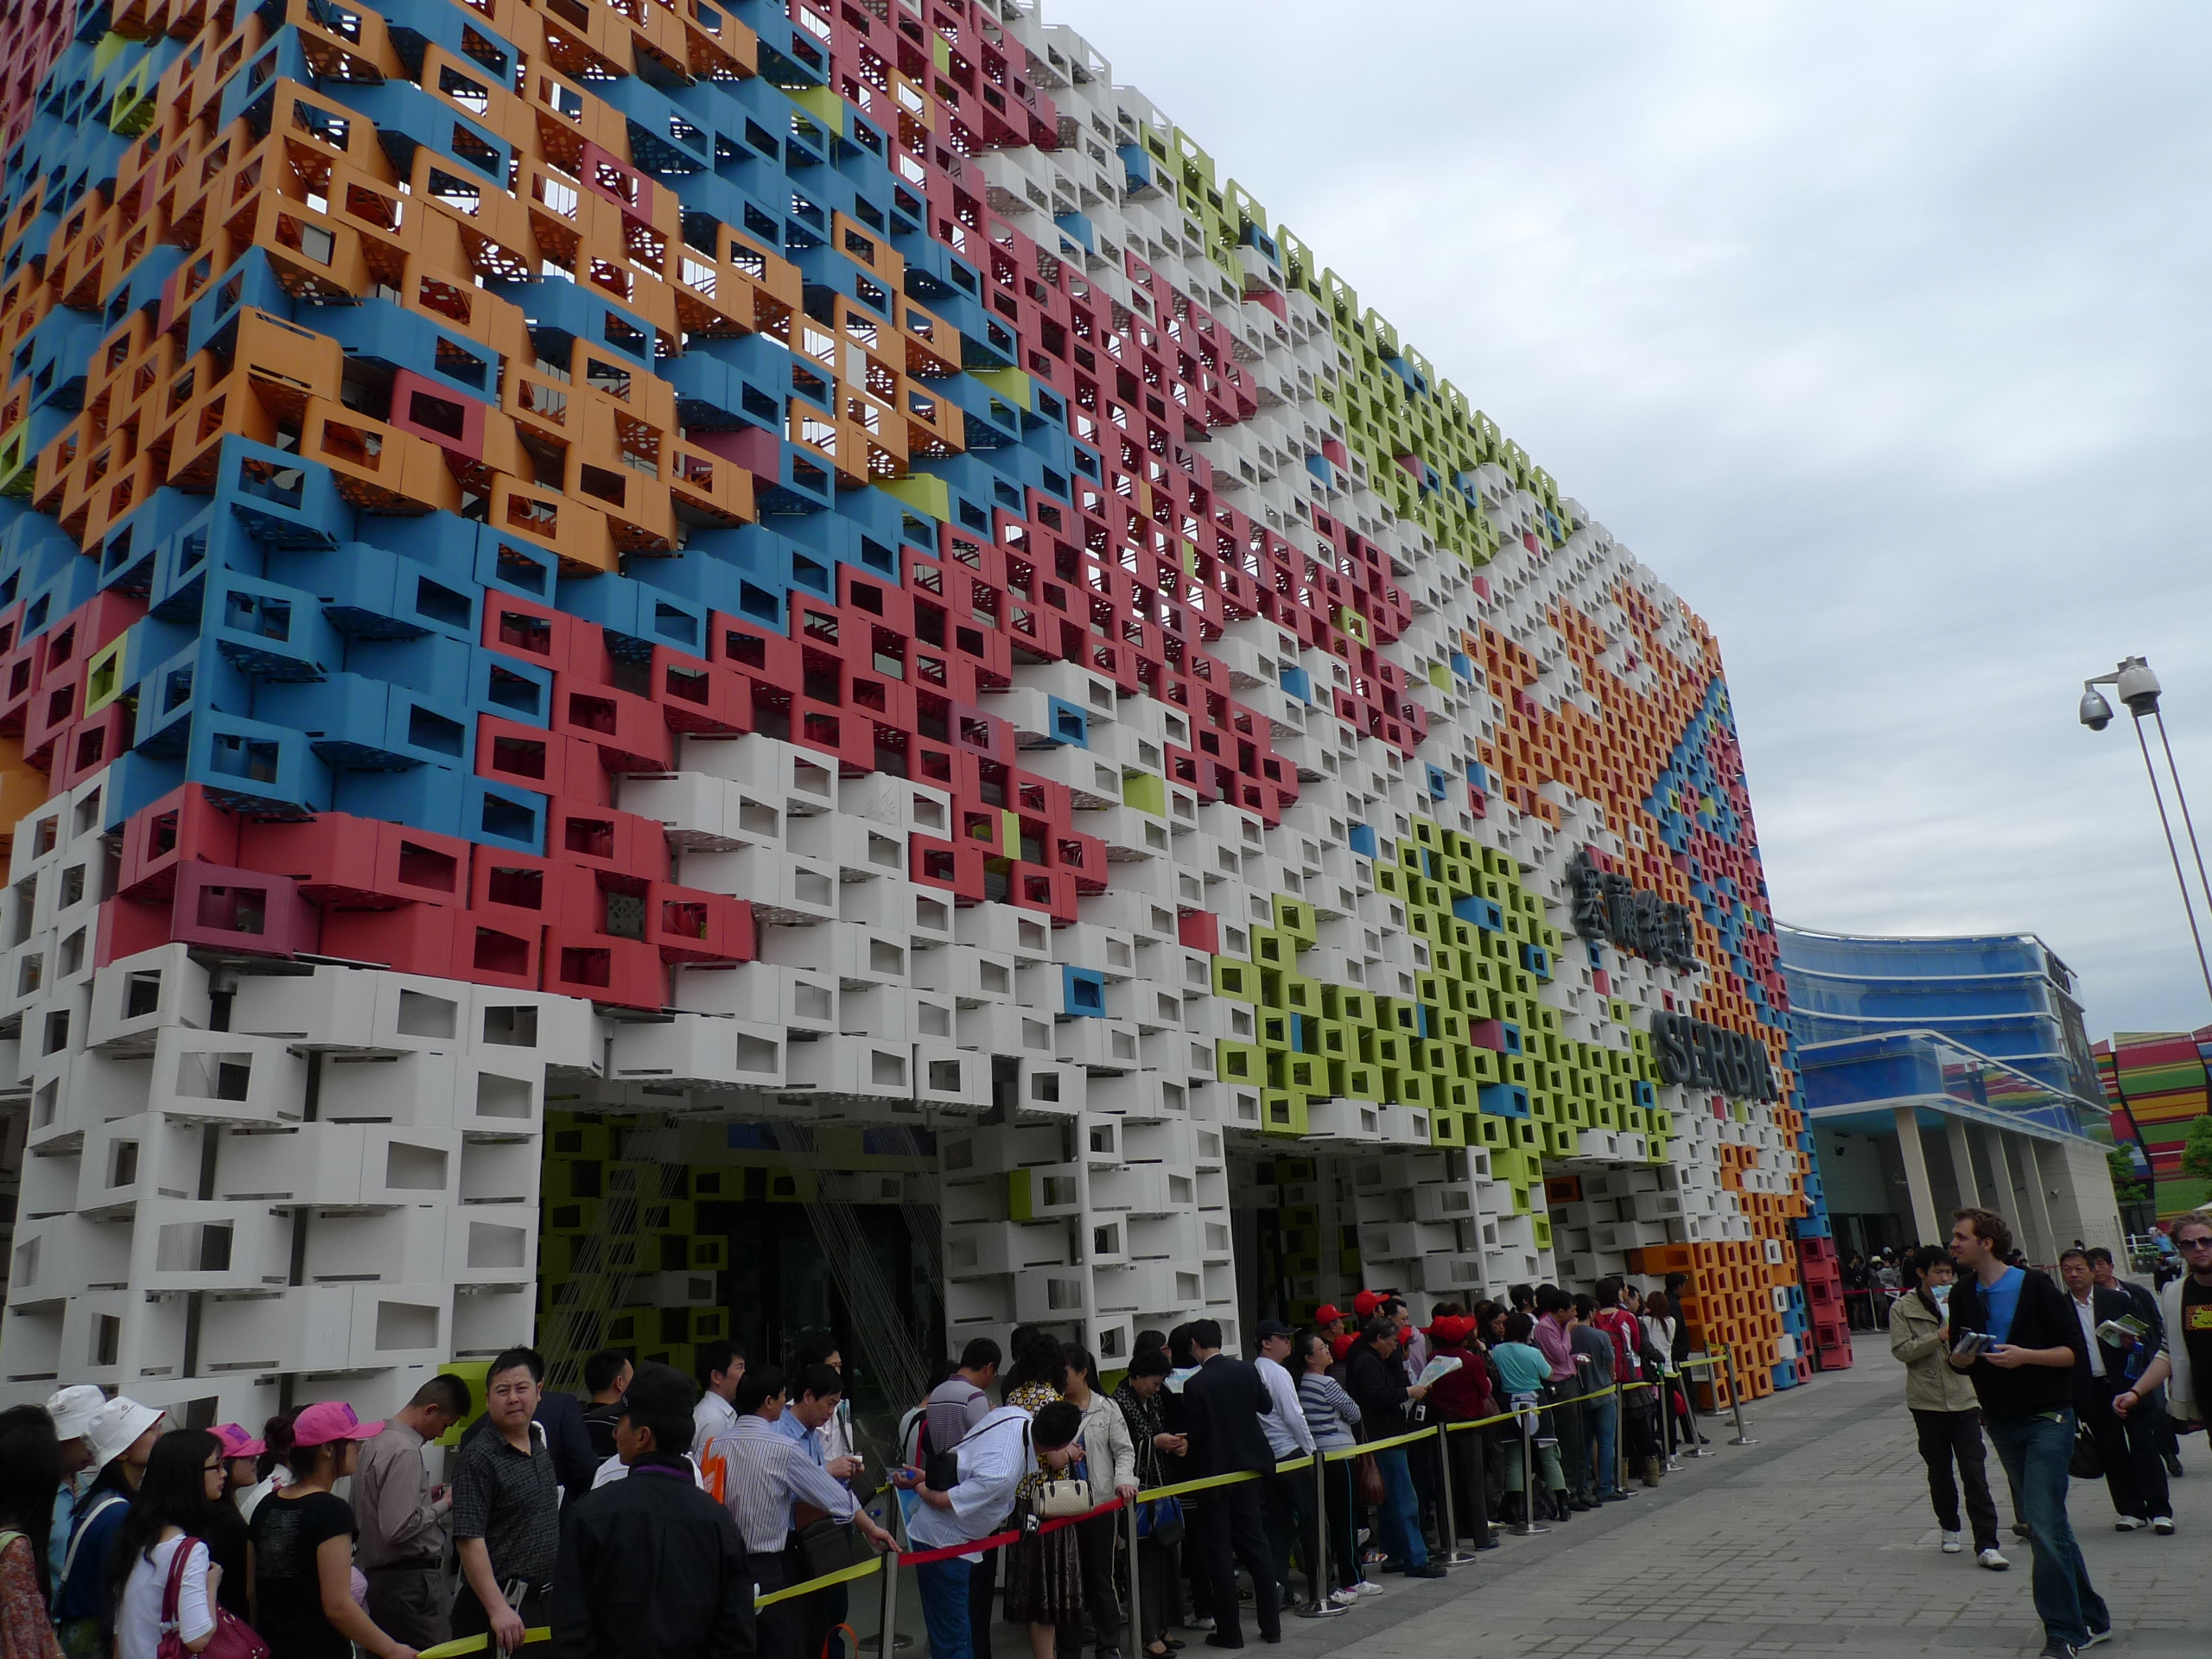 File:Serbia Pavilion of Shanghai Expo 2010.jpg - Wikimedia Commons